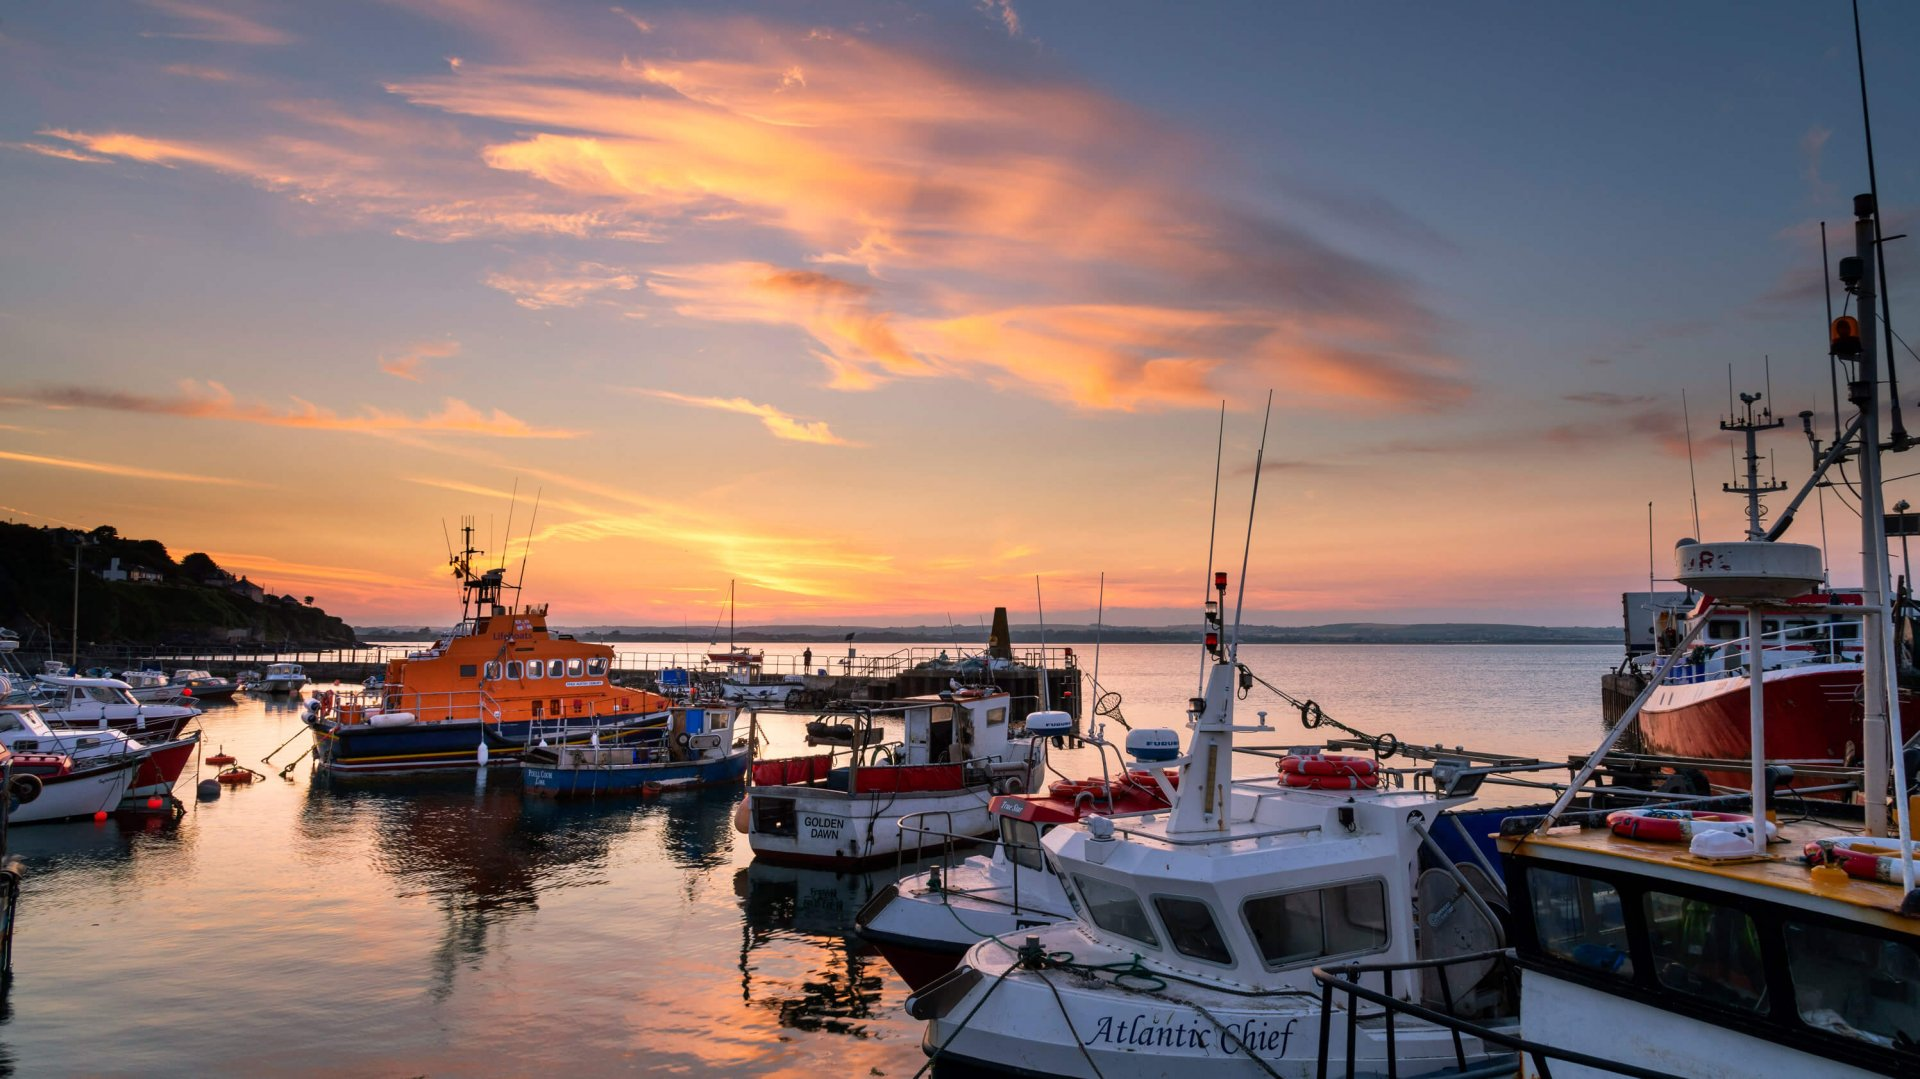 Ballycotton harbour at sunset with boats in the foreground, including a lifeboat